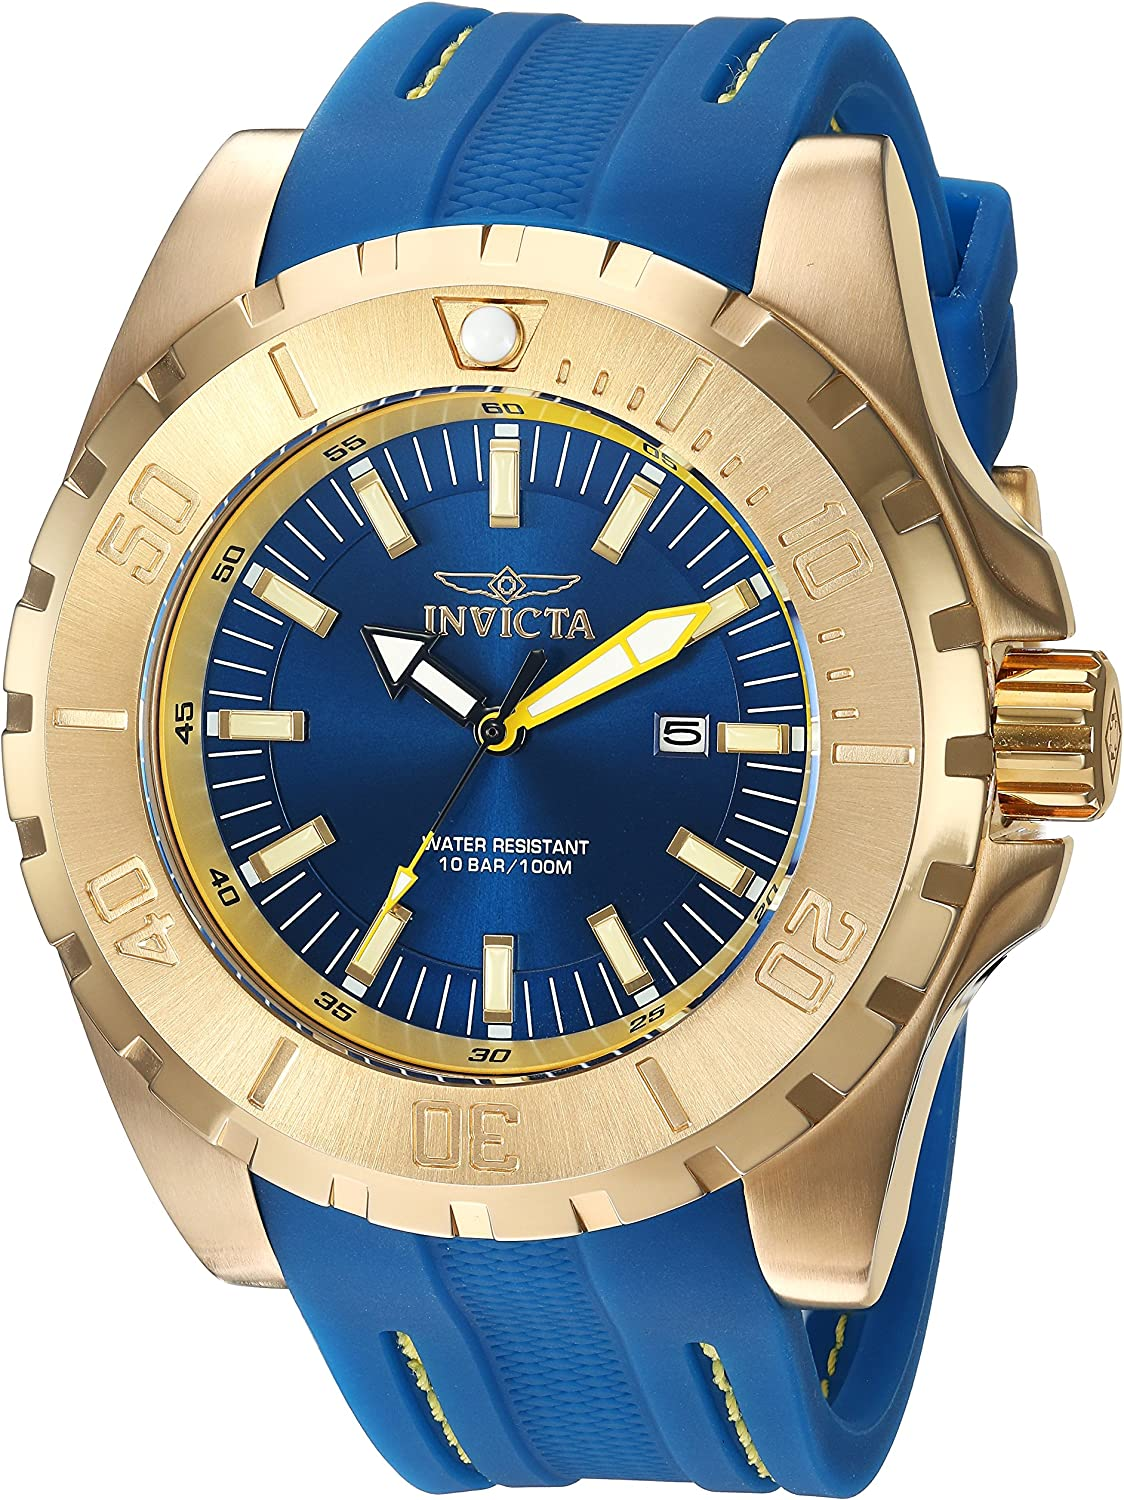 B01NCBCEIG Invicta Men\'s Pro Diver Stainless Steel Quartz Watch with Polyurethane Strap, Blue, 26 (Model: 23736) 91D03aw9lNL.UL1500_